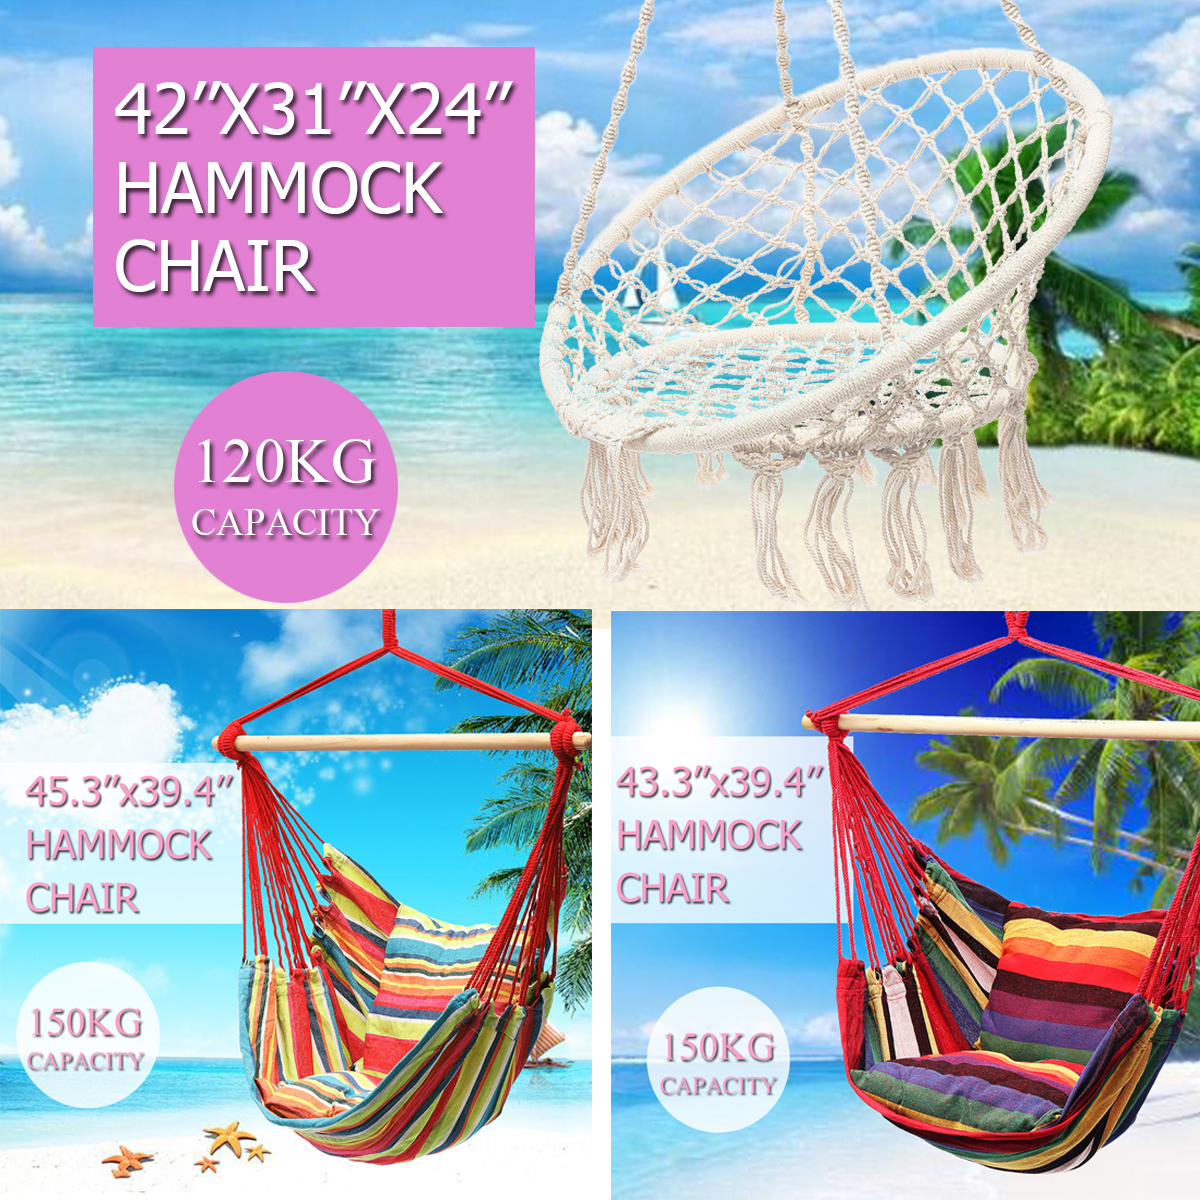 120/150KG Capacity Hanging Hammock Chair Tassel Colorful Fabric Rope Swinging Chair Outdoor Indoor Camping Cottage Garden жирное масло 100